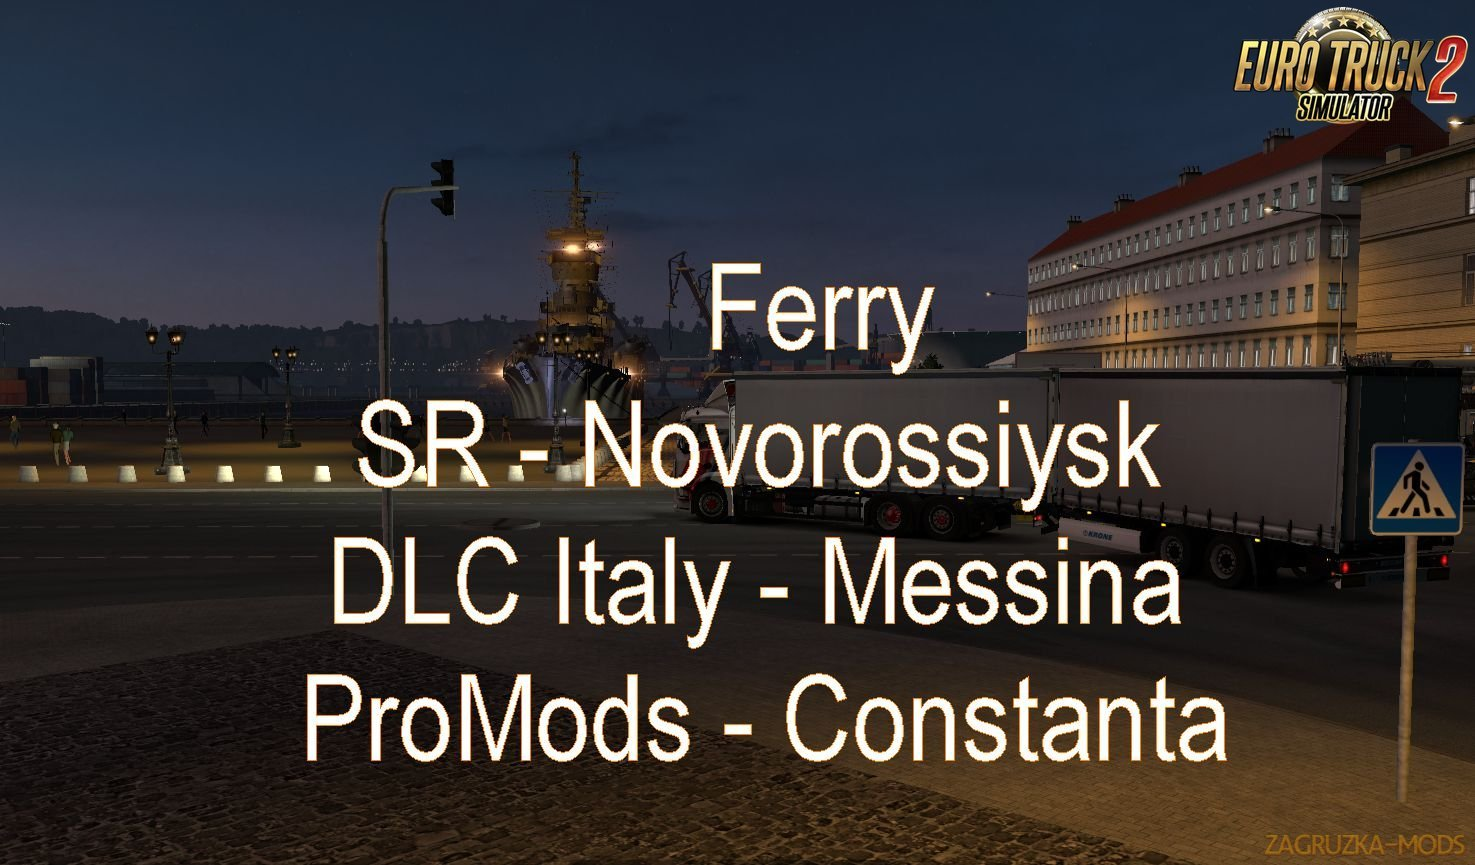 Ferry Connection for Map: Promods2.27-Southern Region7.2-ItalyDLC